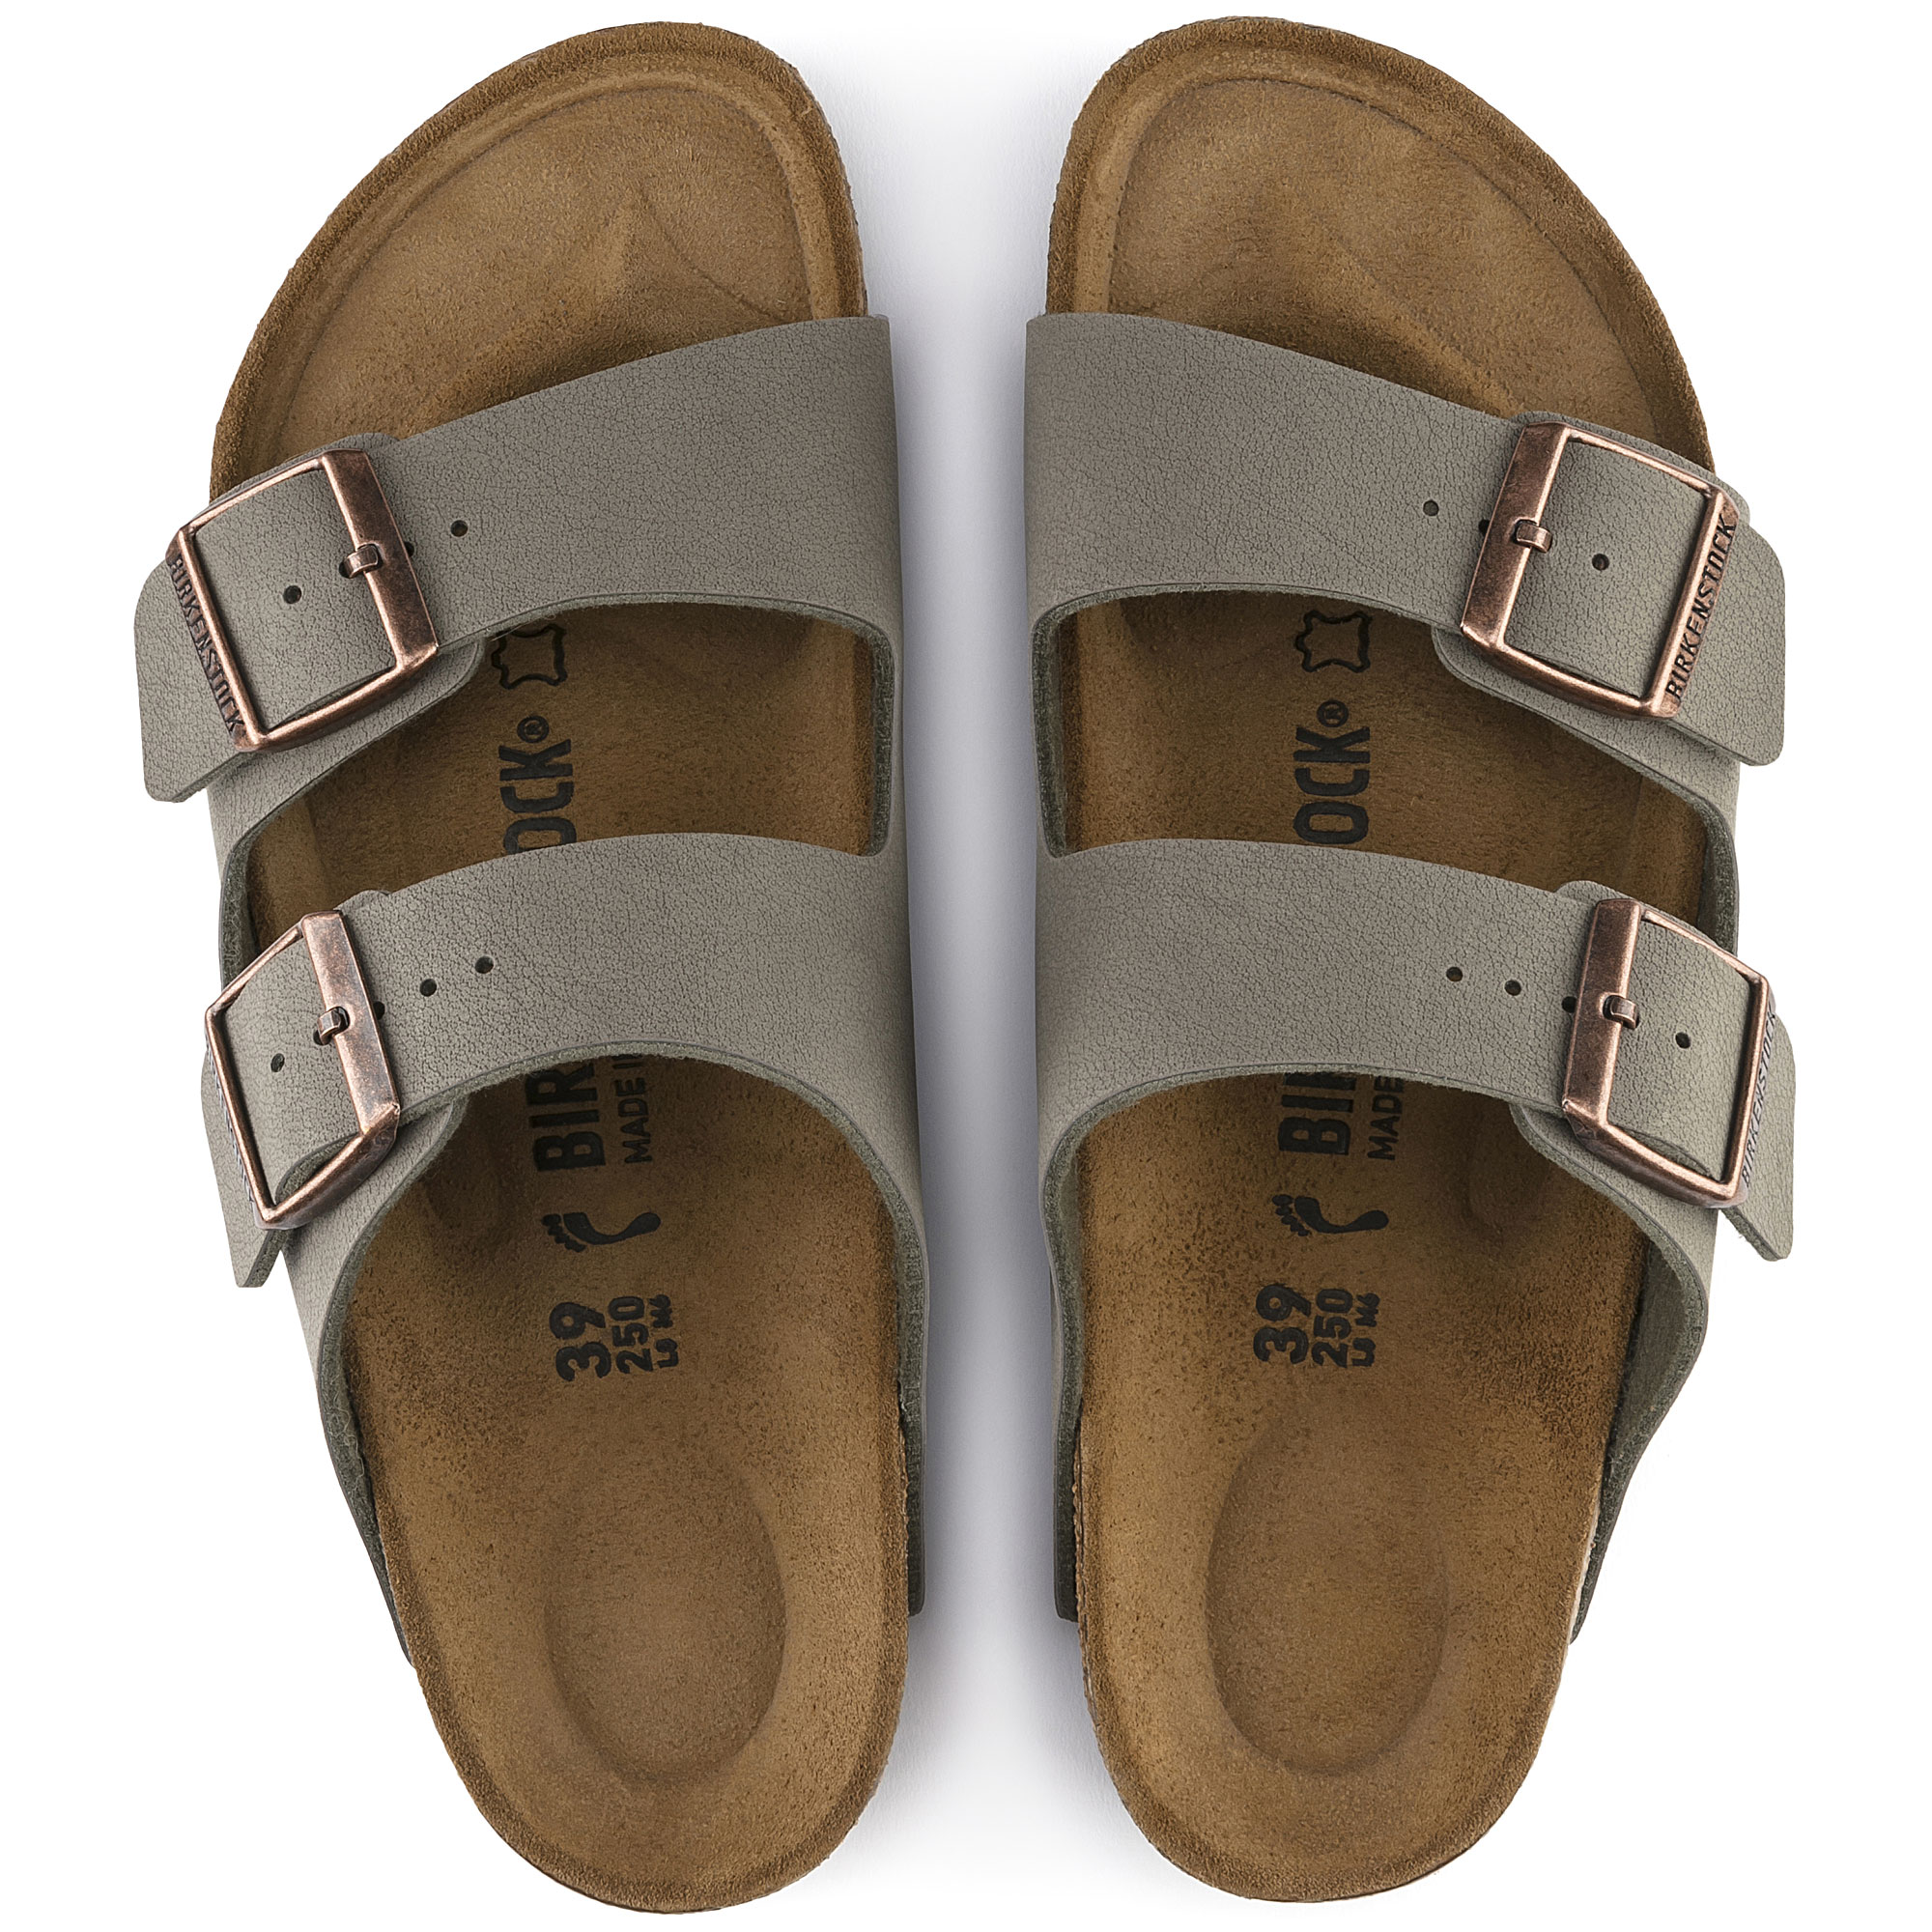 37 Best Birks images | Birkenstock, Shoe boots, Me too shoes